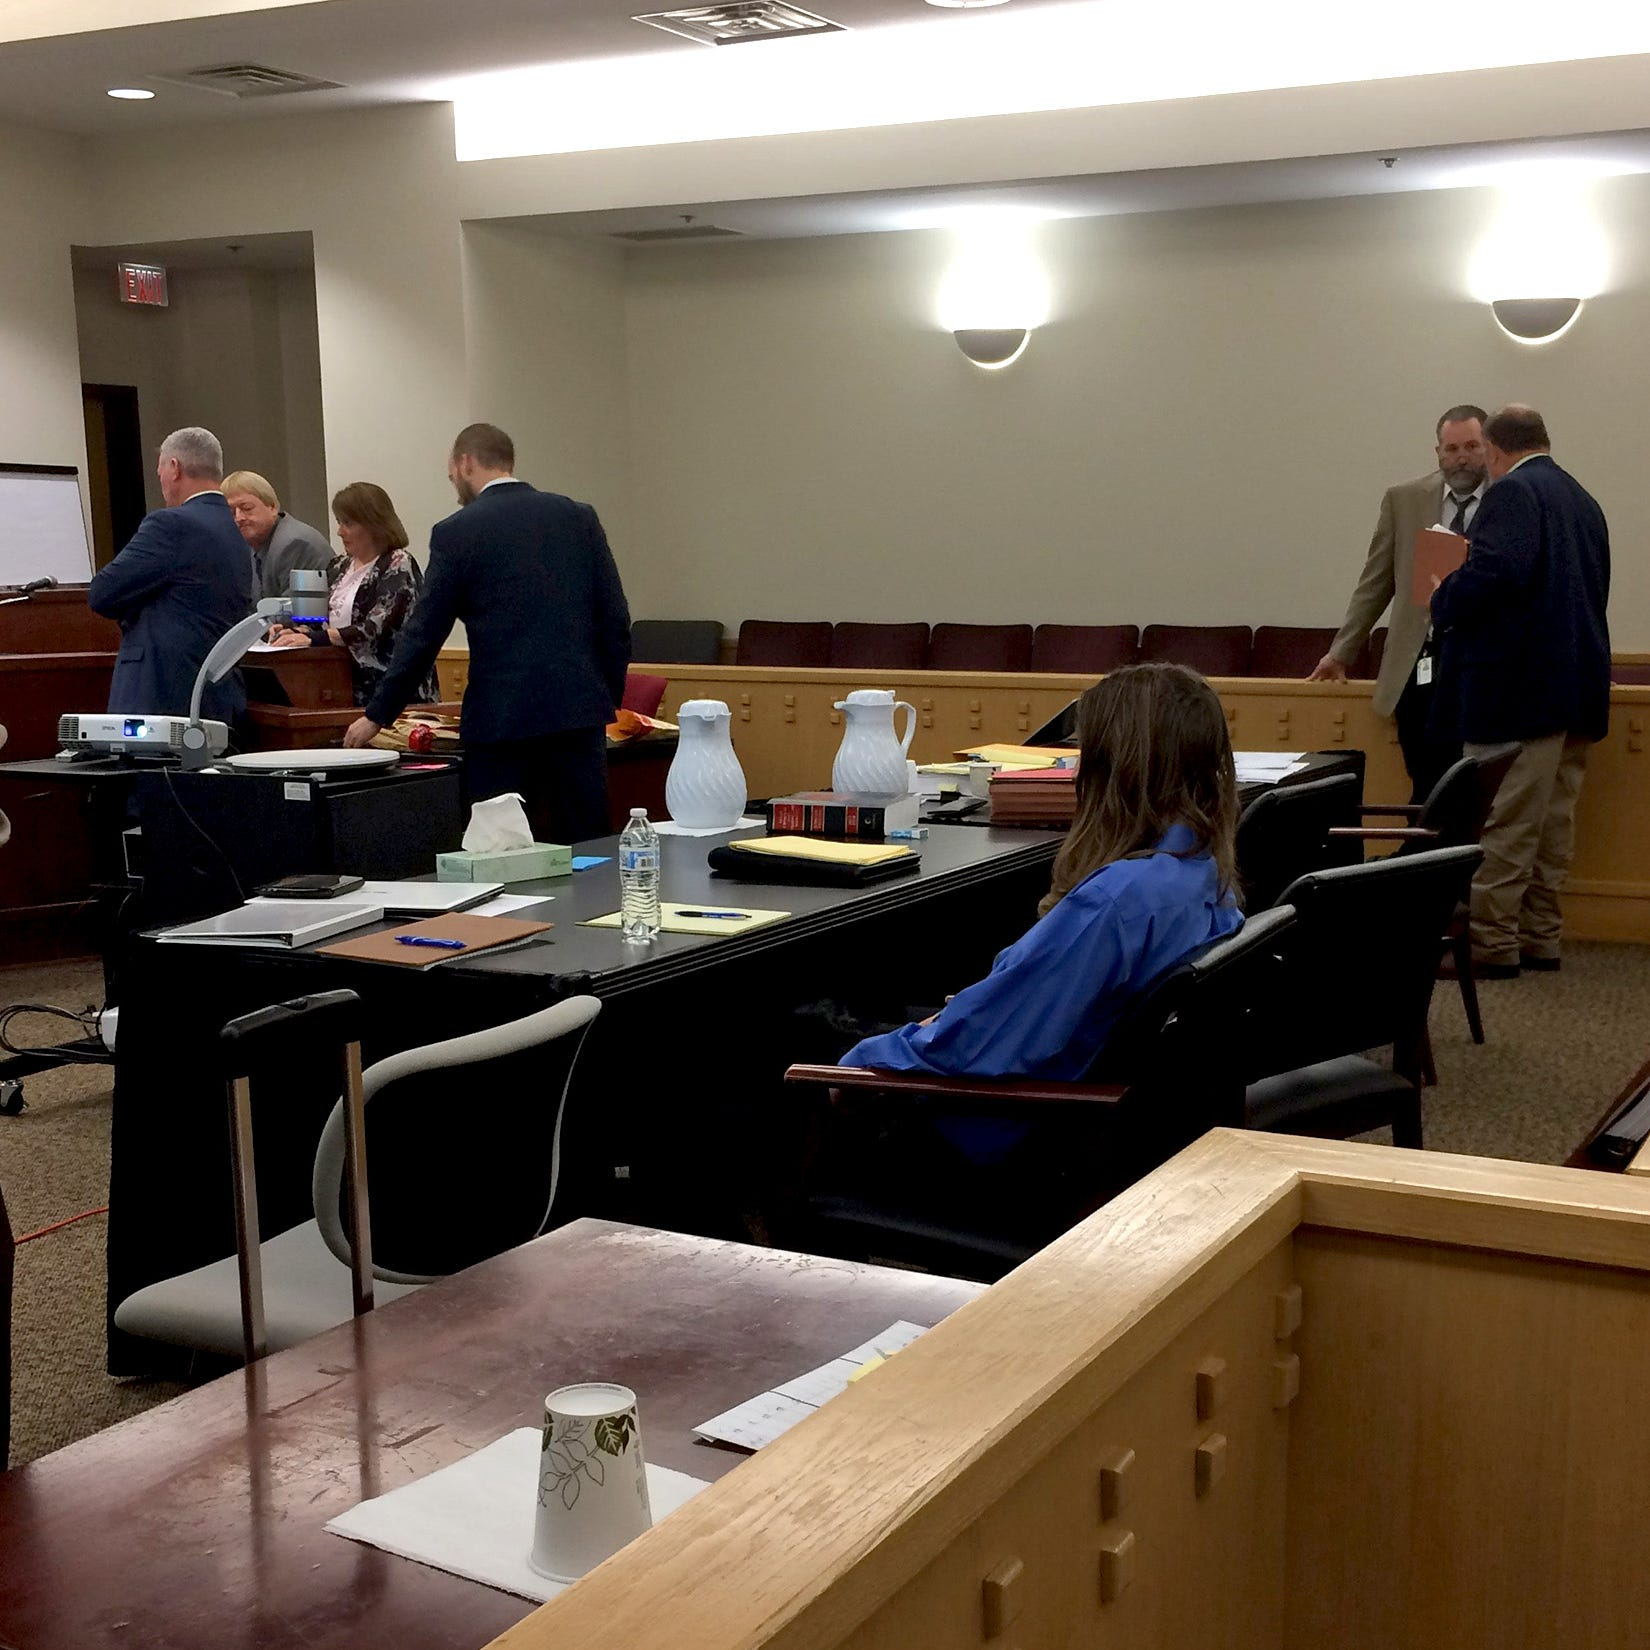 Medical examiner testifies about autopsy photos, manner of death in Kody Lott murder trial